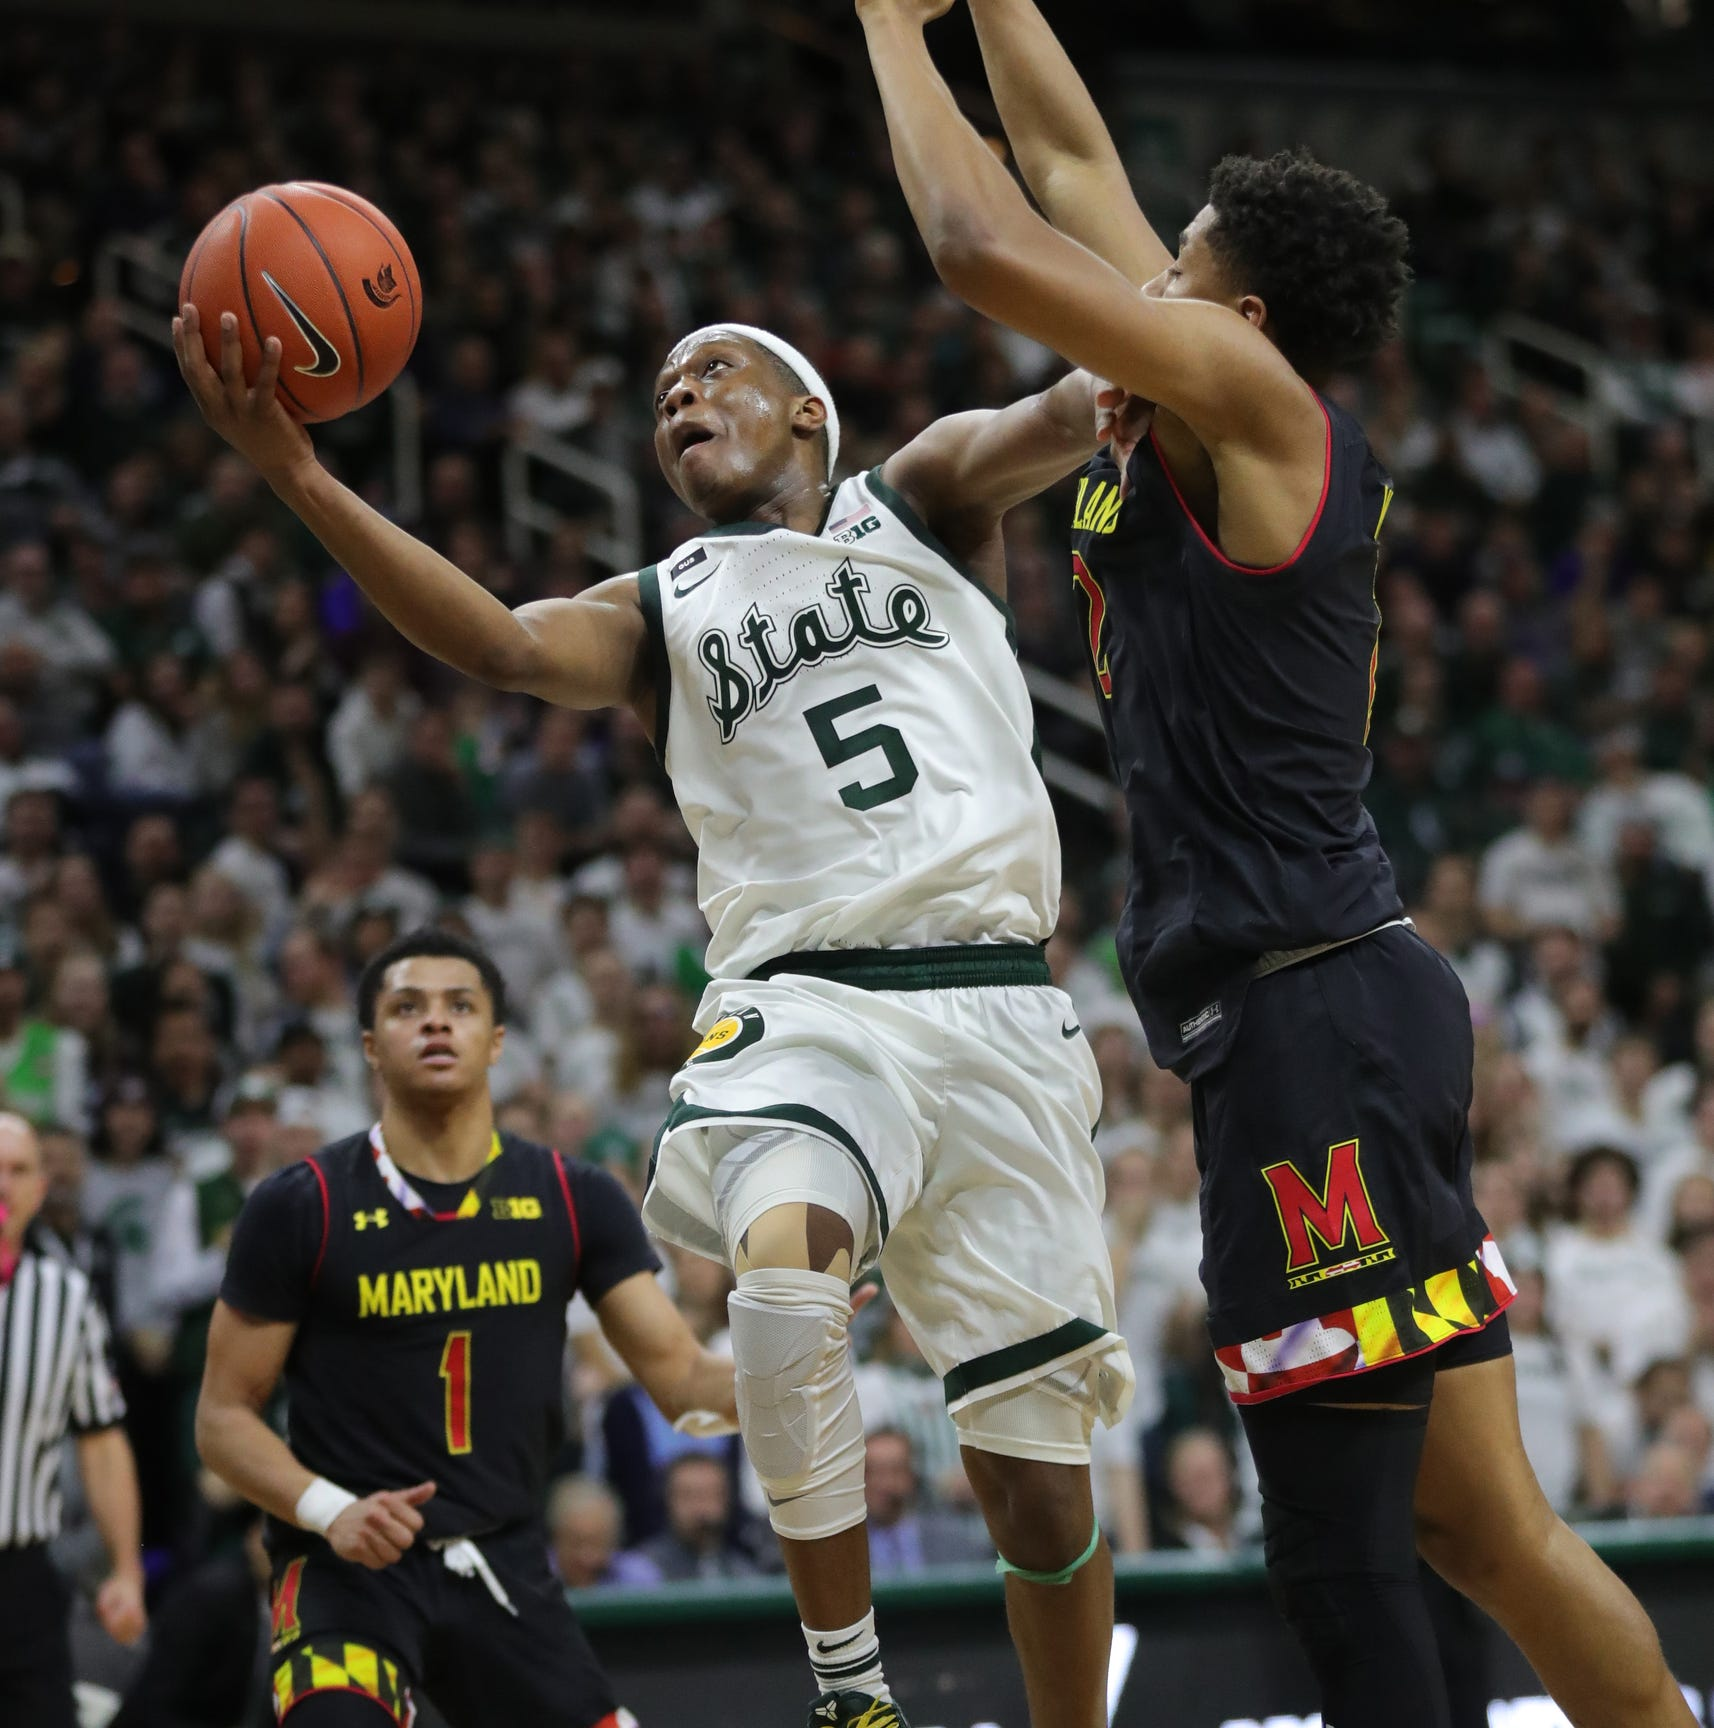 Michigan State's fastbreak 'lethal'; Izzo worries about it breaking down